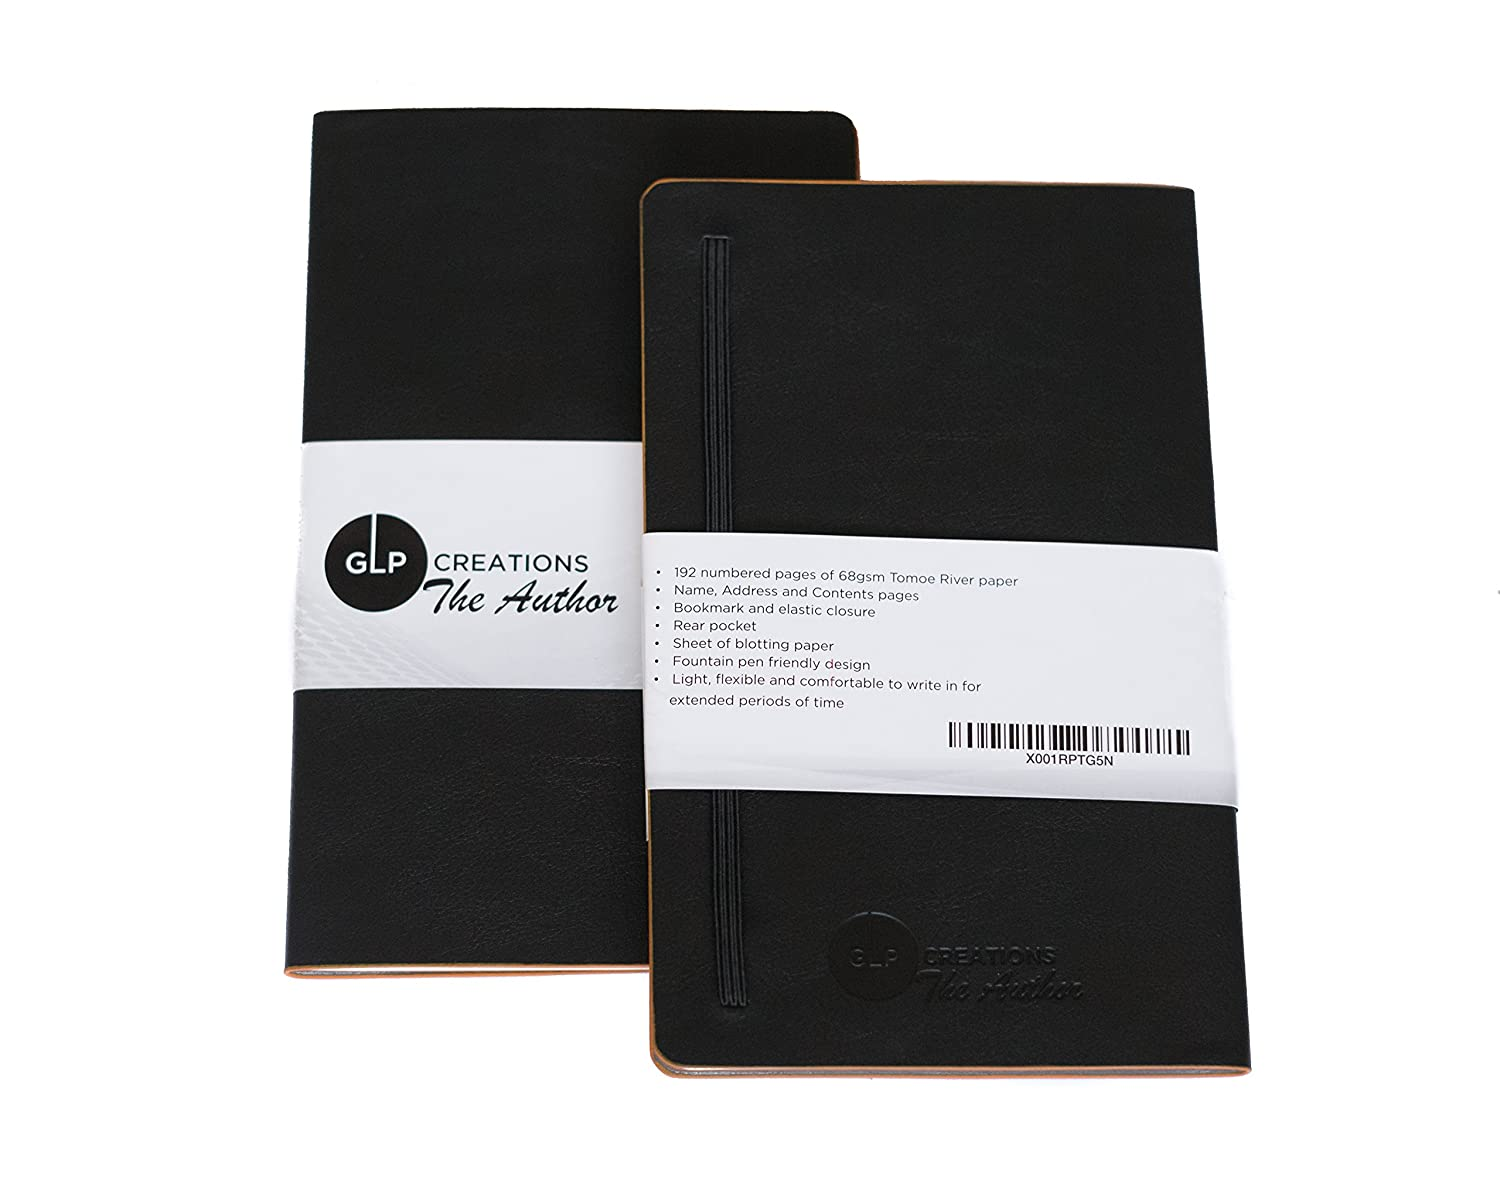 GLP Creations der Autor Tomoe River papier notebook Black/Lined …